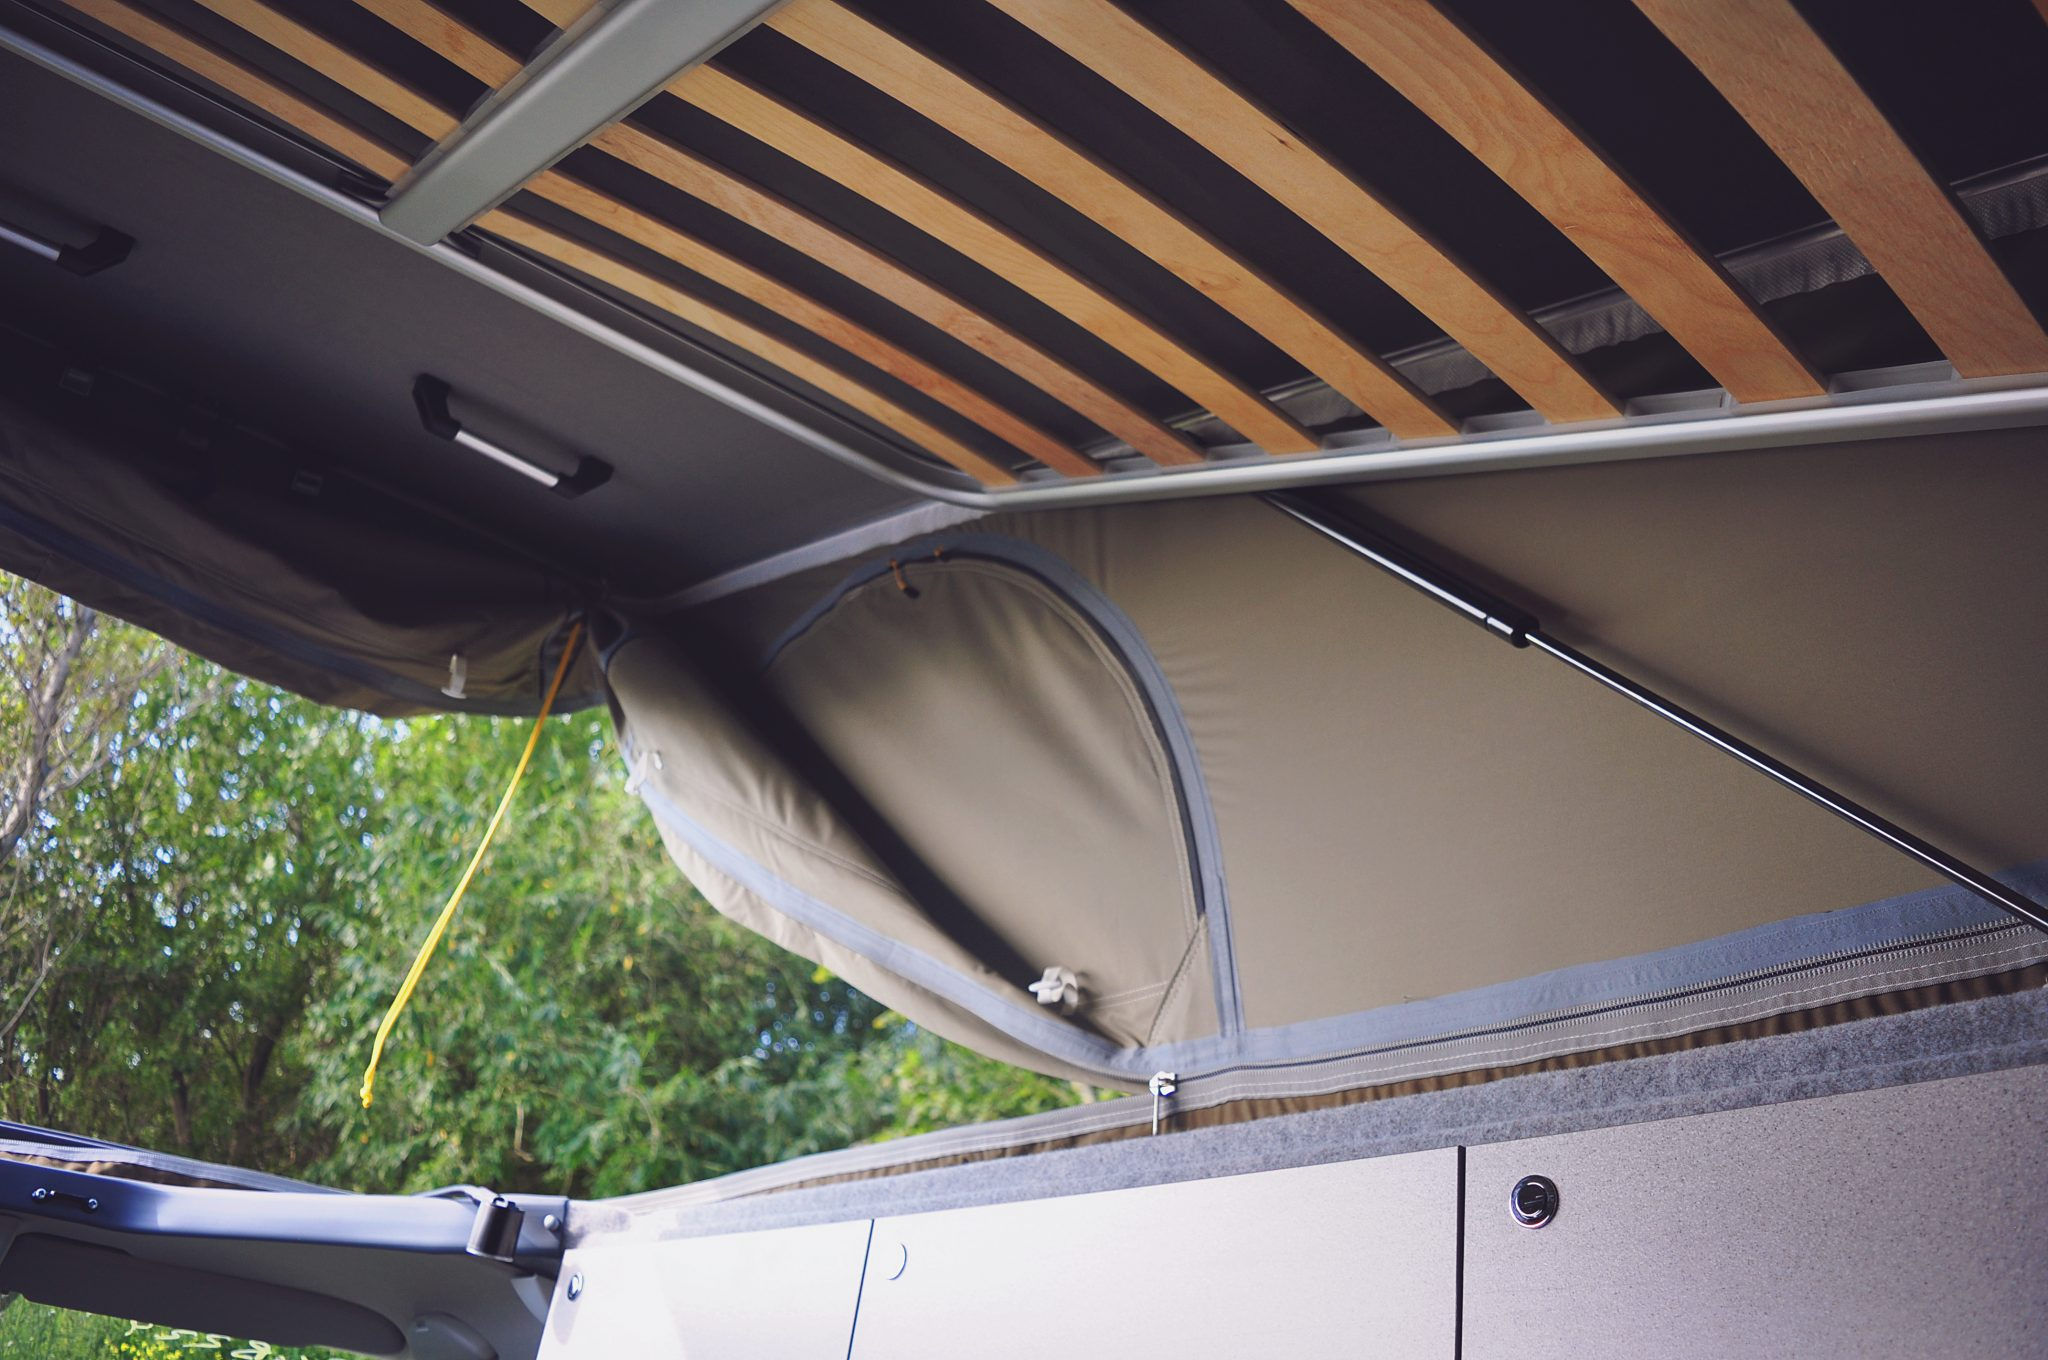 On a typical vw campervan replacing an elevating roof canvas is job that can only be undertaken by a specialist converter and would typically mean a bill